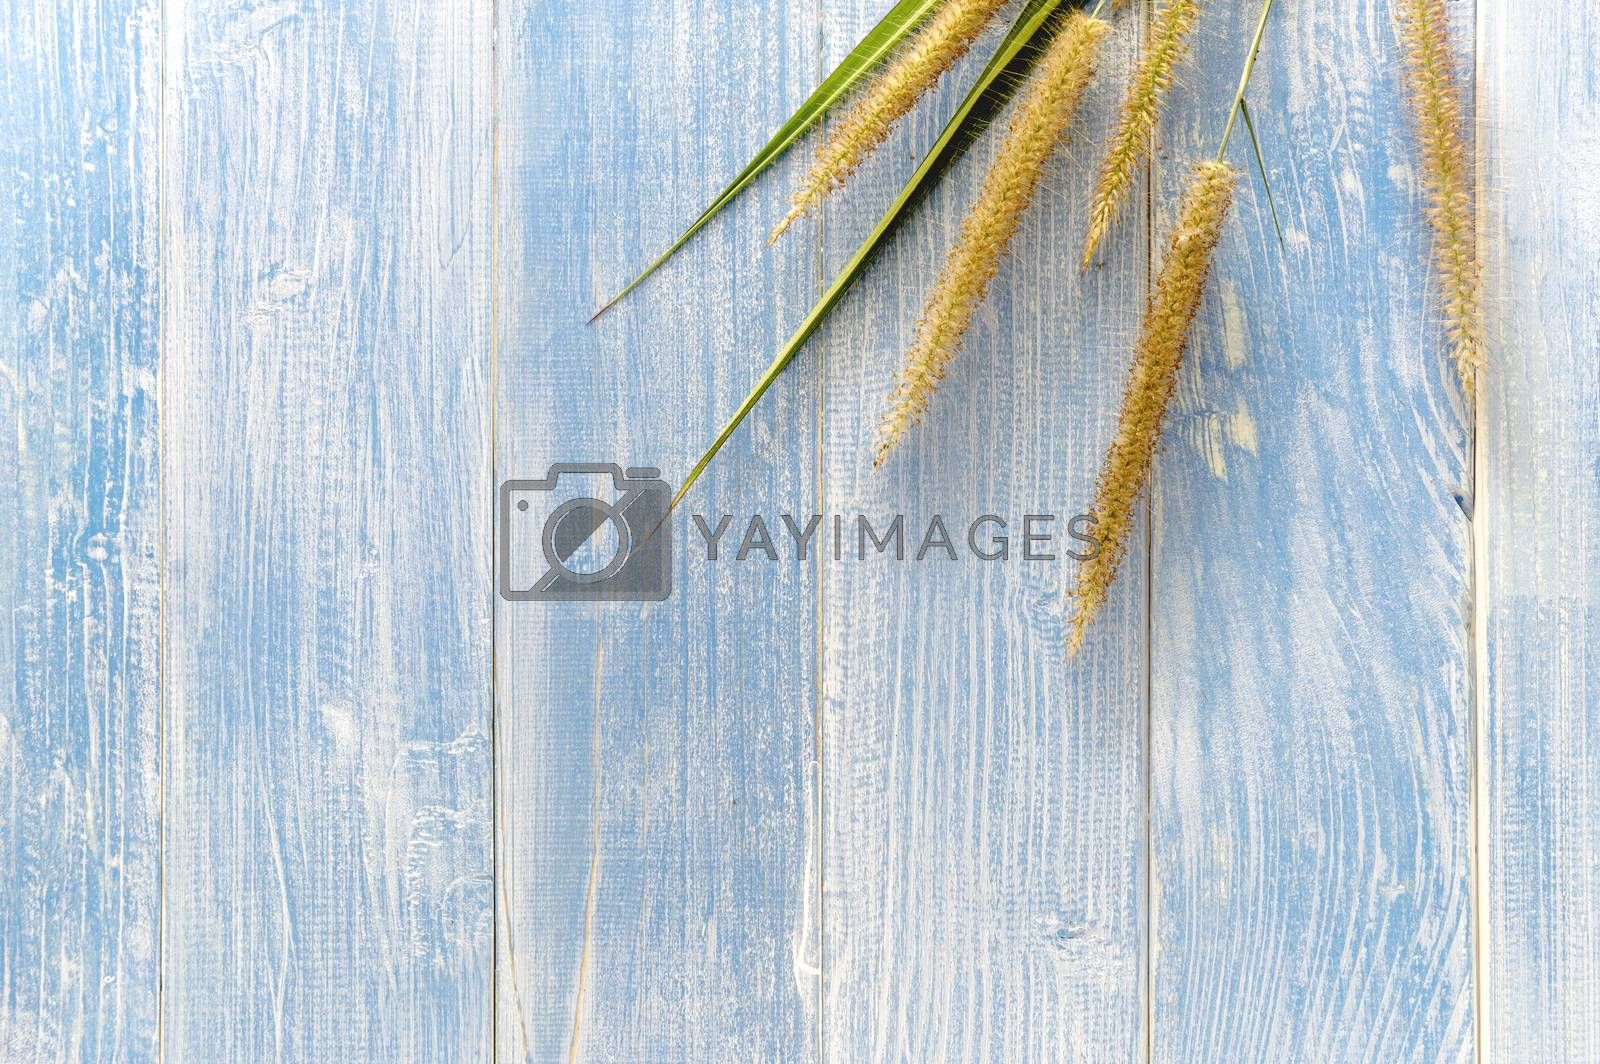 The grass flowers laid on a wooden floor have a blue wooden floor as background.